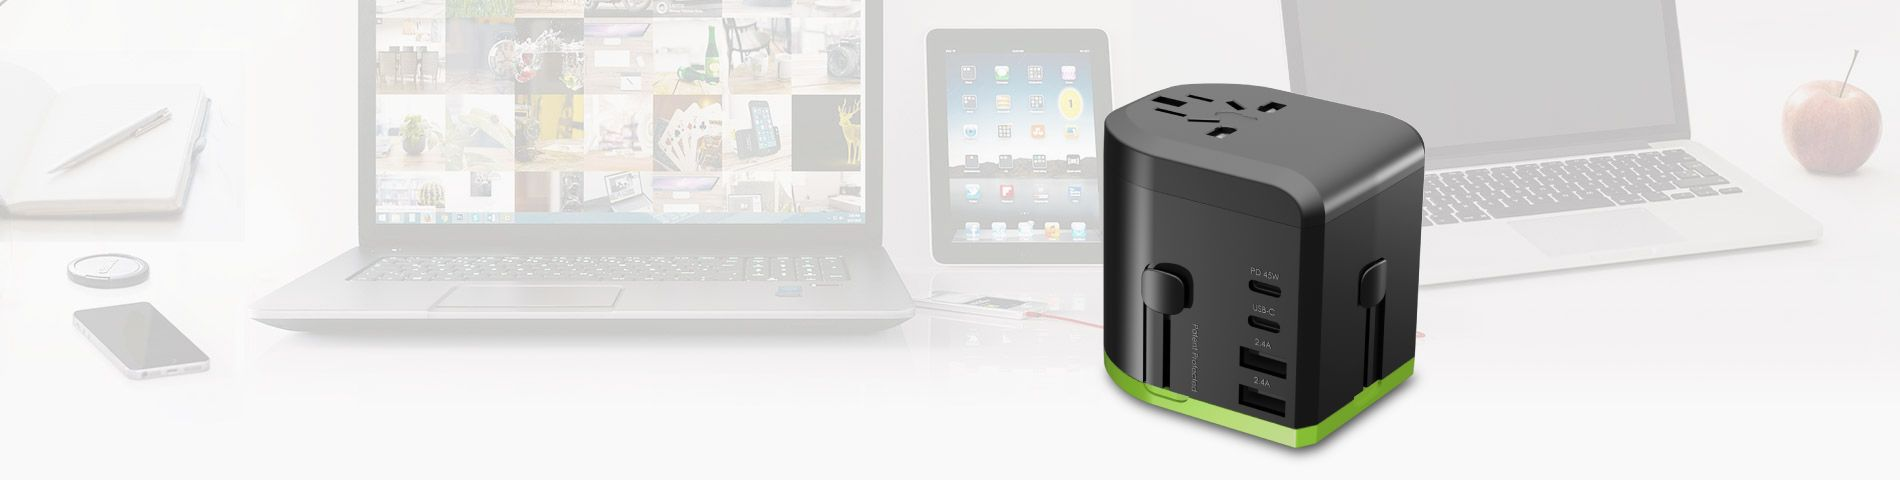 45W PD TRAVEL ADAPTER Fast Charging